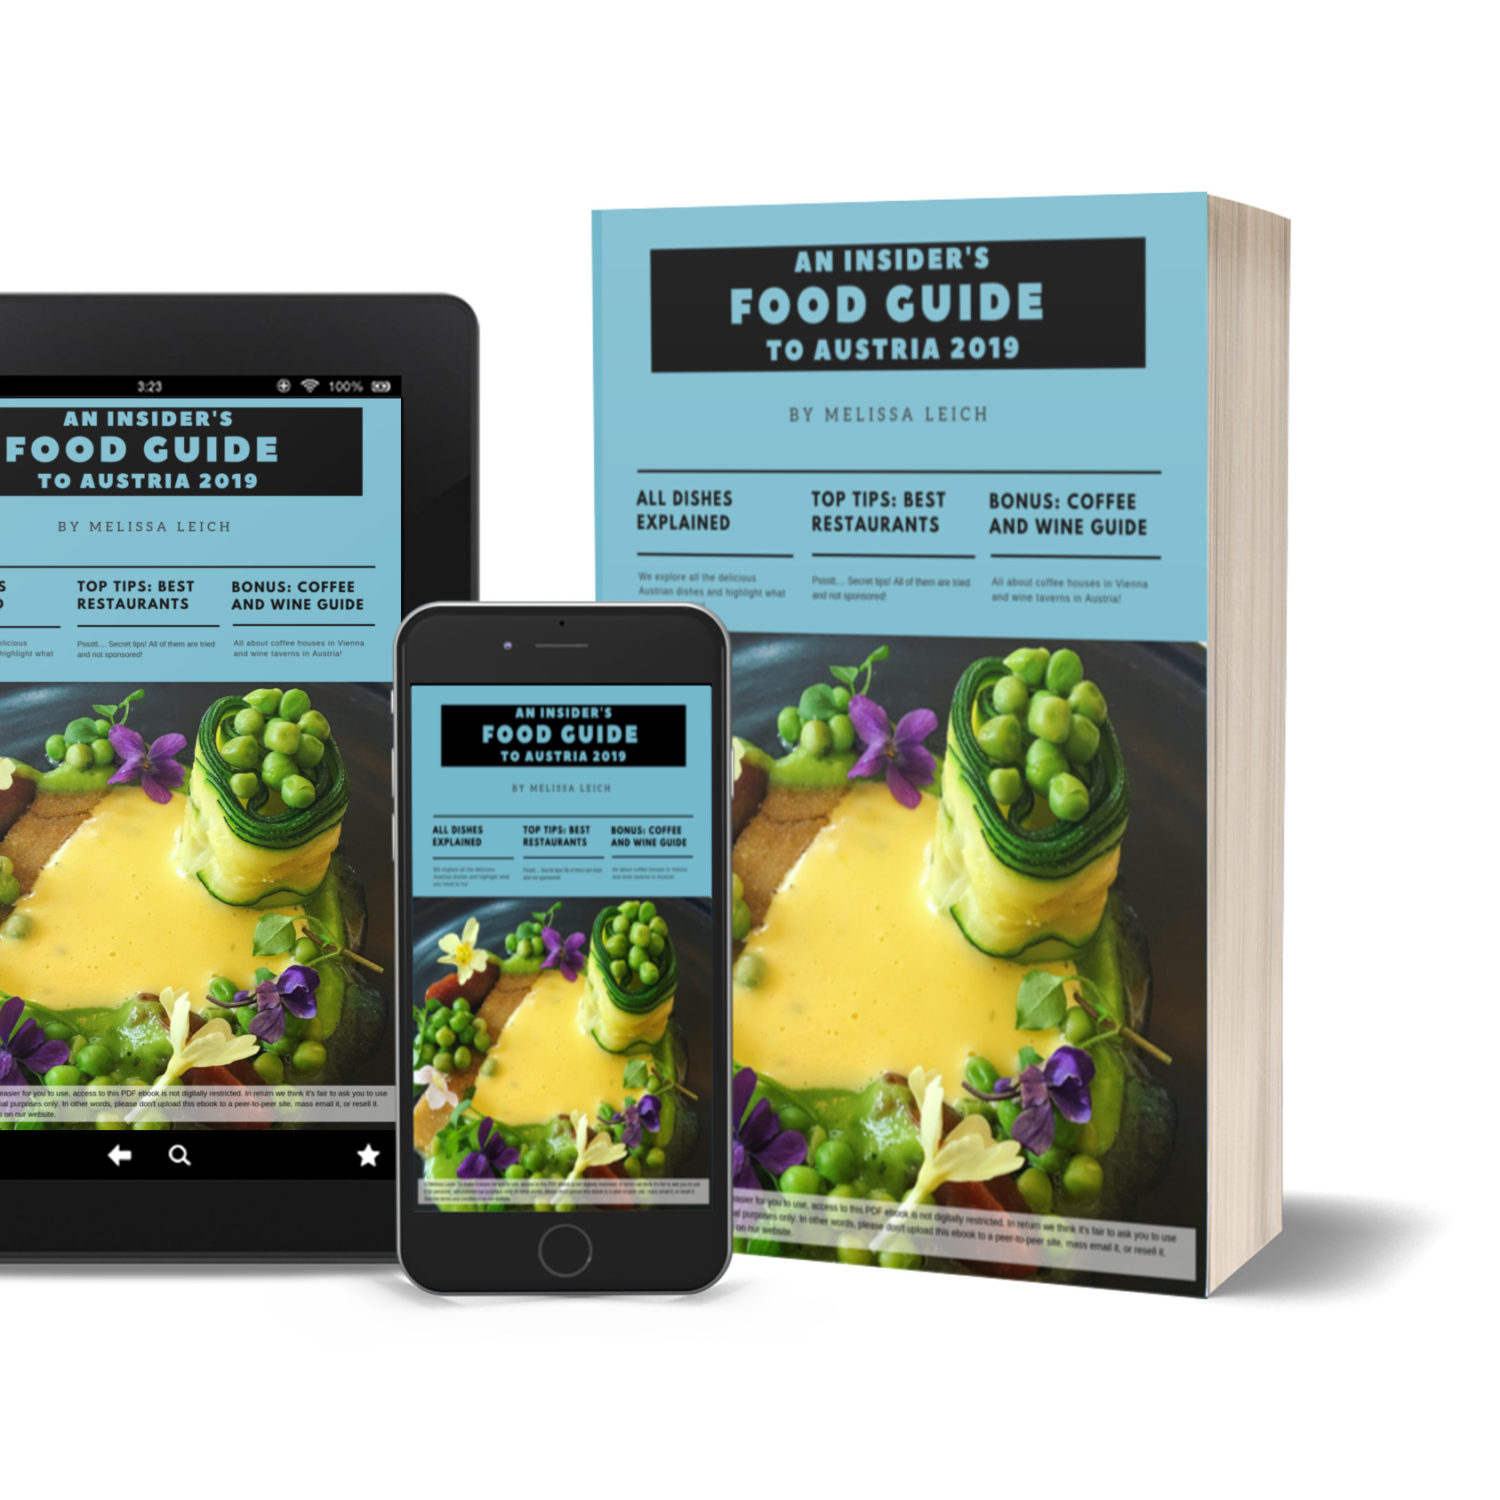 eBook: An Insider's Food Guide to Austria 2019